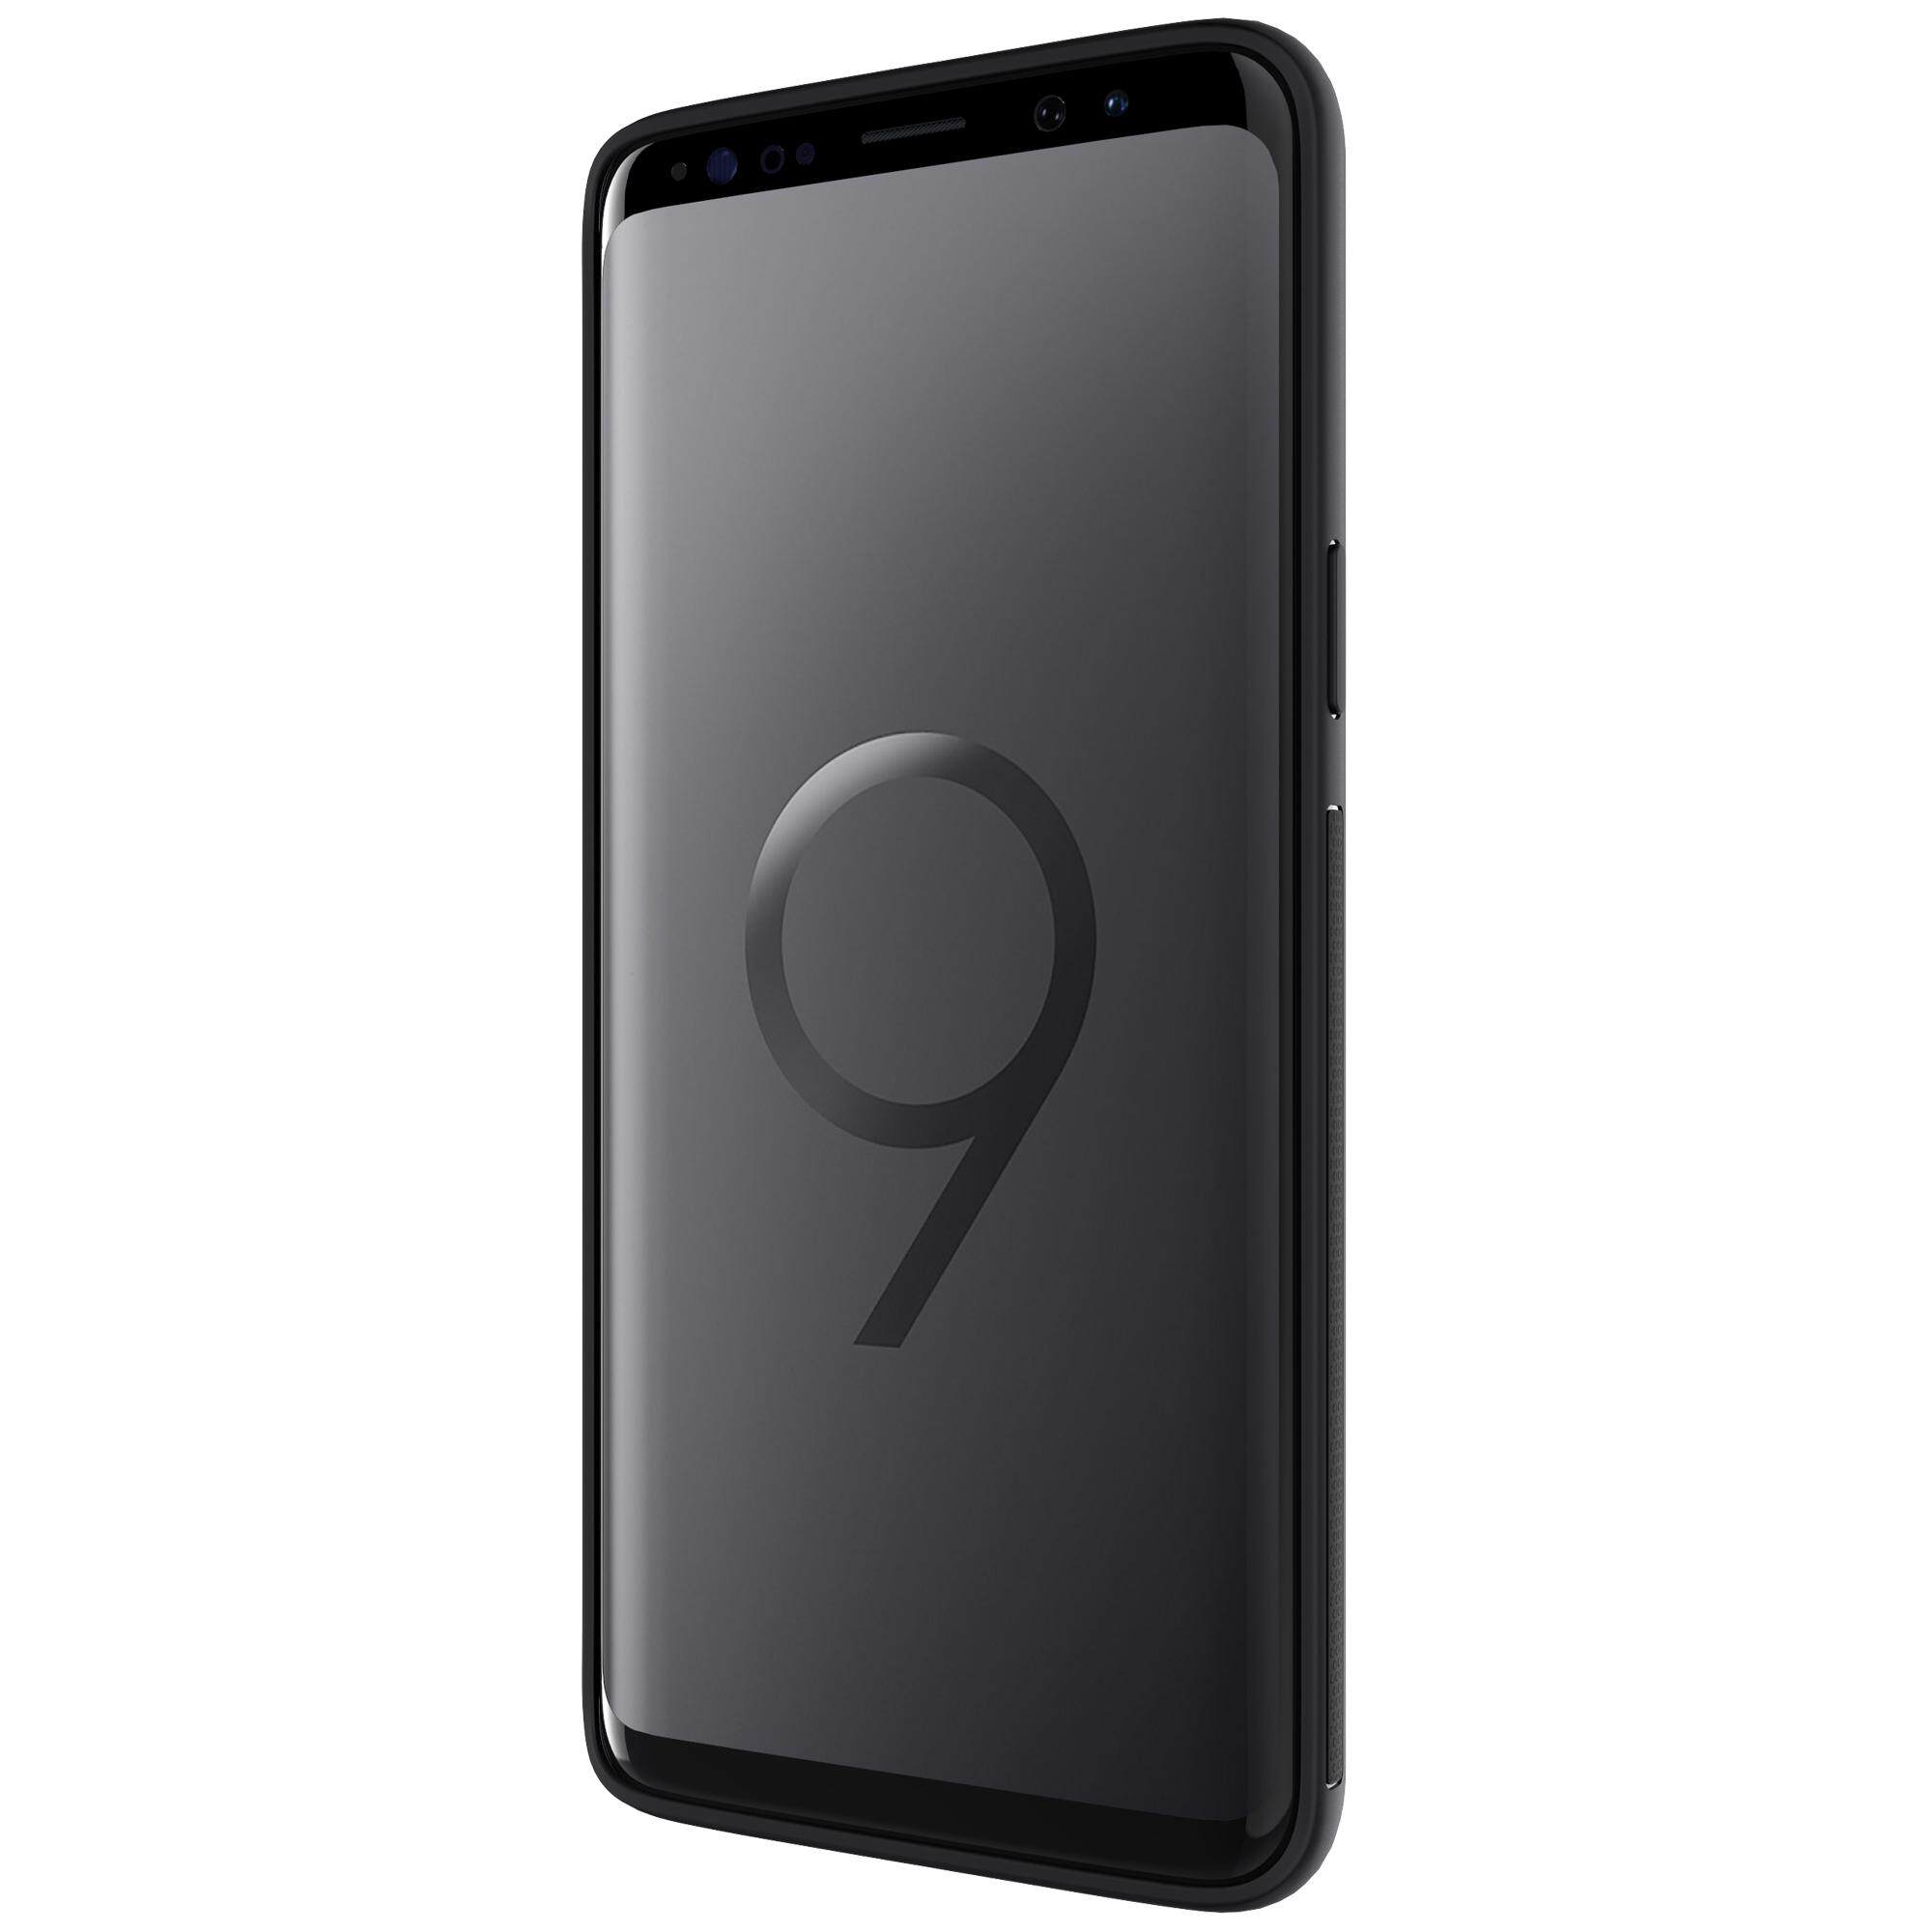 ... NILLKIN Magic Case for Samsung Samsung Galaxy S9+ G965 Brushed TPU Qi Wireless Charging Receiver Cover